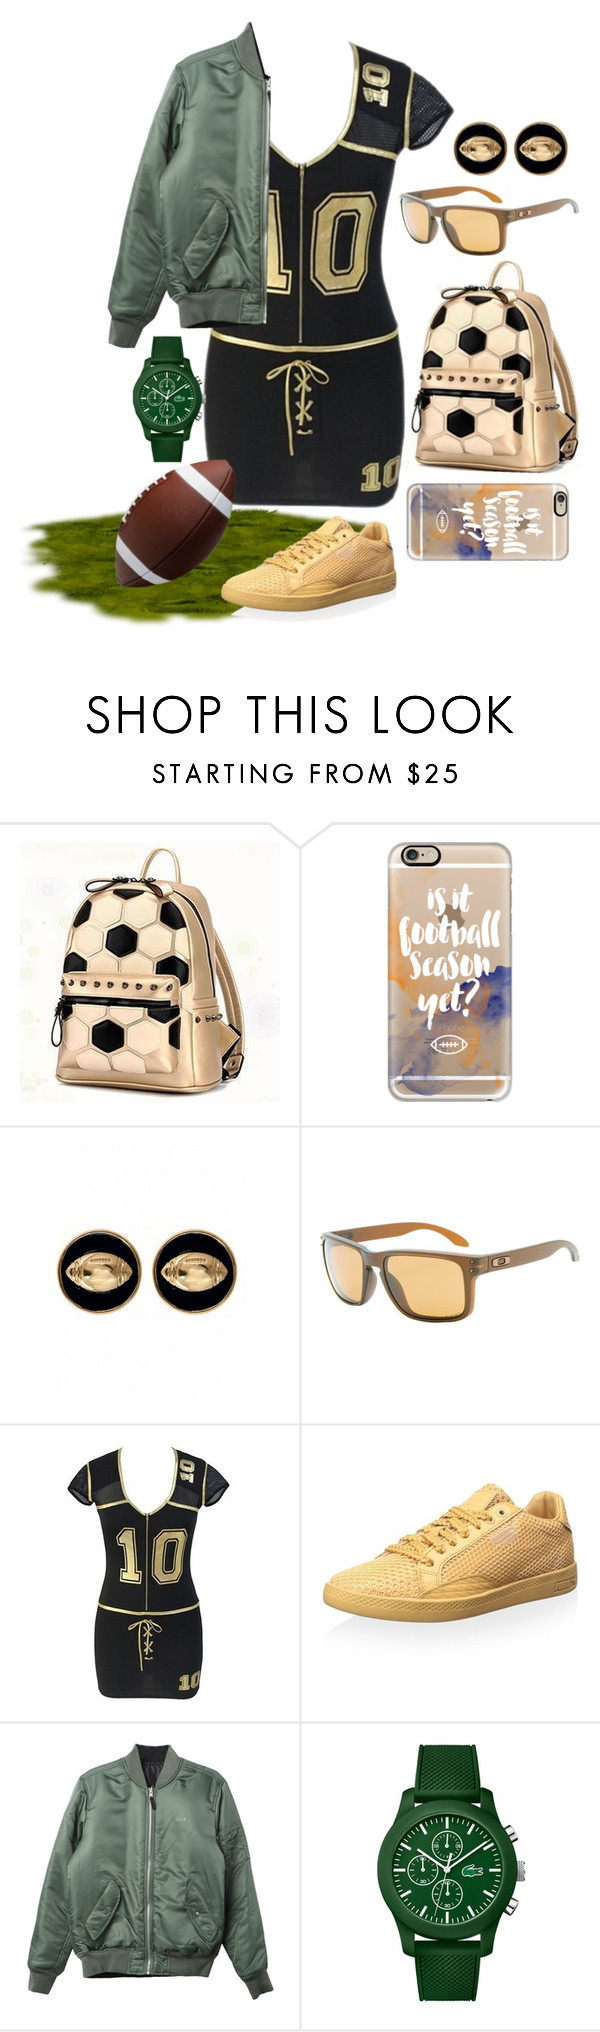 """football"" by aries-indonesia ❤ liked on Polyvore featuring BeiBaoBao, Casetify, Fornash, Oakley, Puma, HUF and Lacoste"